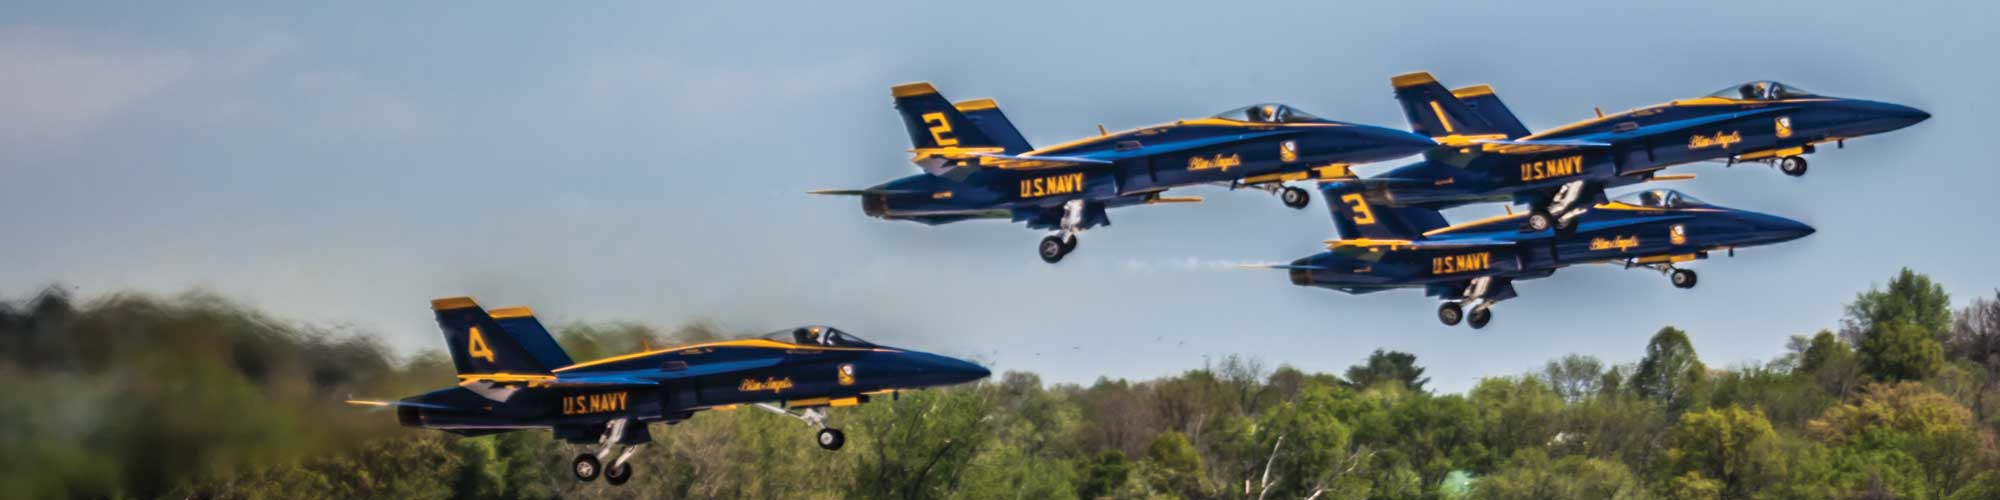 2014 Spirit of St. Louis Air Show